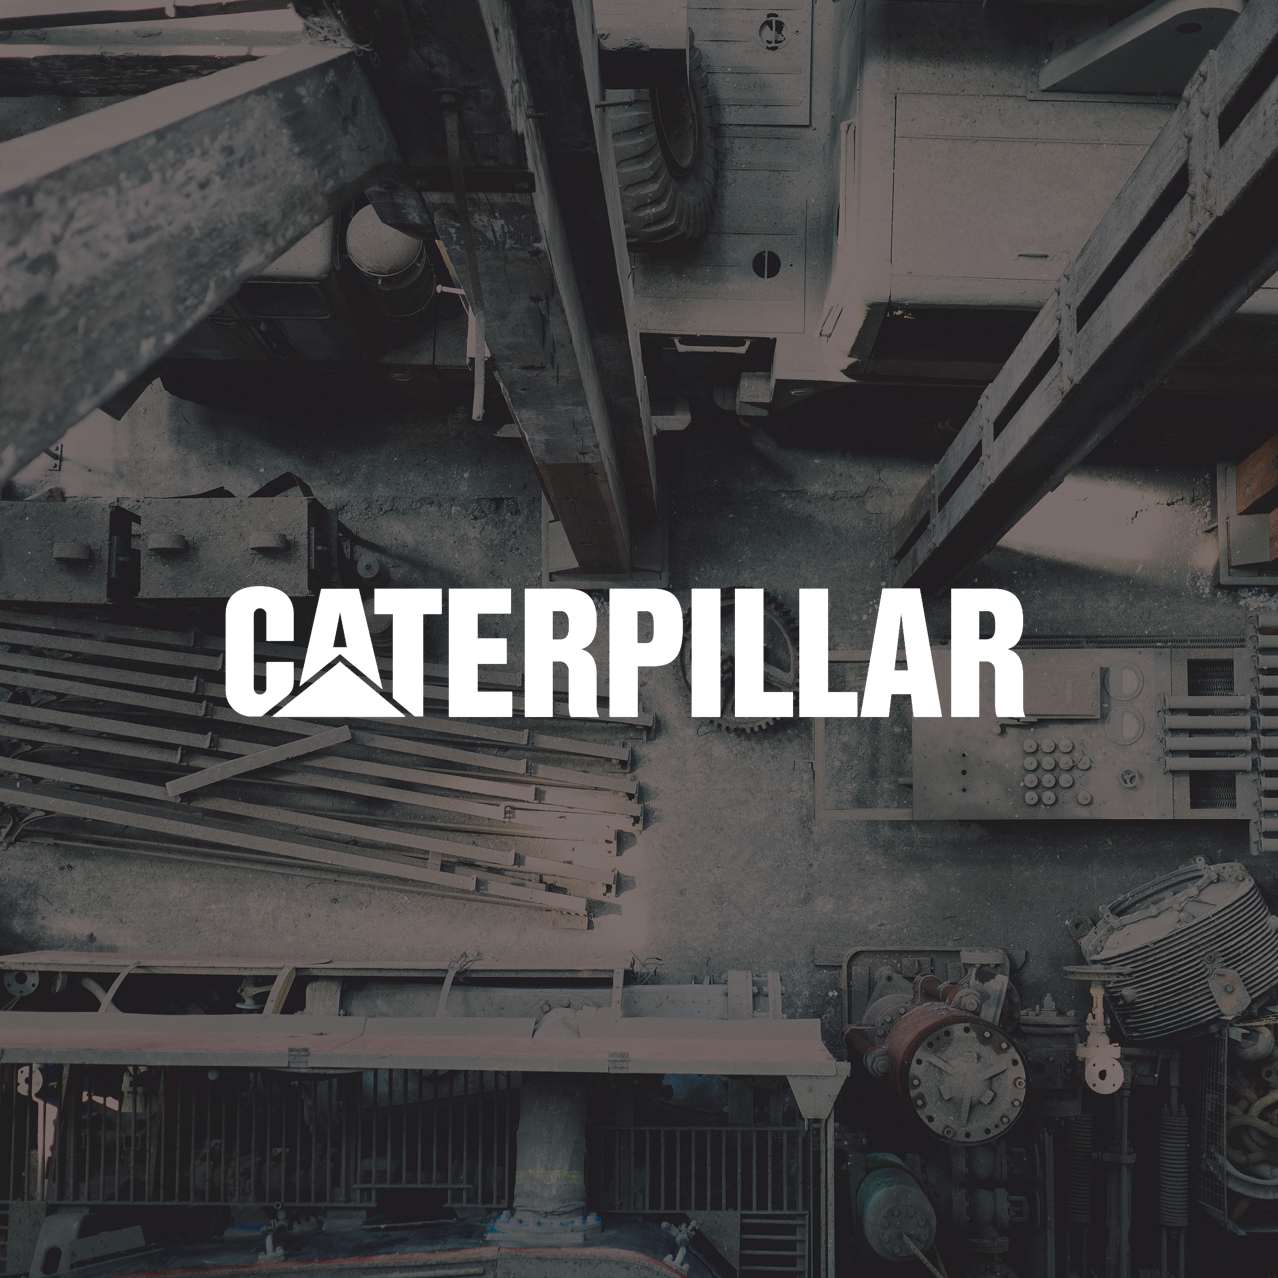 Caterpillar, the world's most trusted brand for heavy machinery, and Bullitt Group, manufacturer of connected devices, were releasing several models of rugged smartphones in the US called Cat Phones. To launch three different products we initiated a PR program focused on product reviews and vertical media including construction, utilities and service workers which resulted in 175 pieces of total media coverage including Popular Mechanics, Android Headlines, Reuters, PC Mag, CNET, Mashable, WIRED, EWEEK and more.